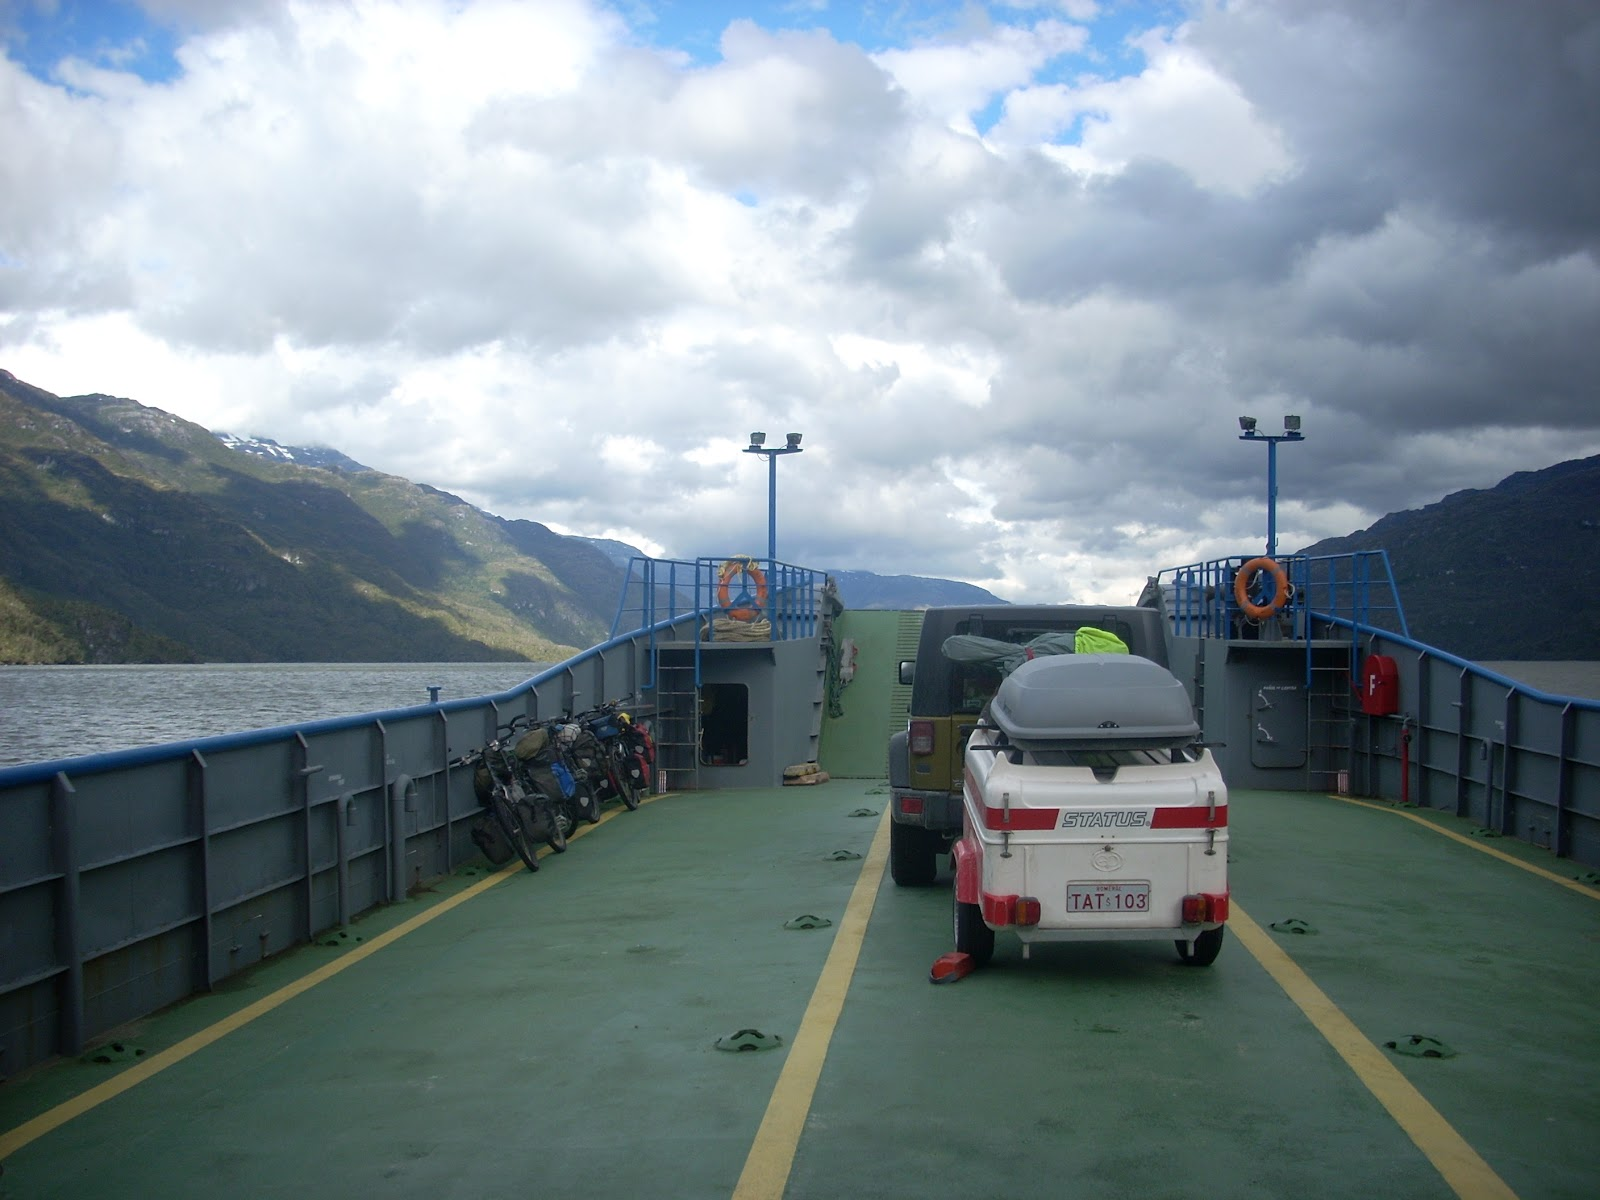 Bikes on the ferry